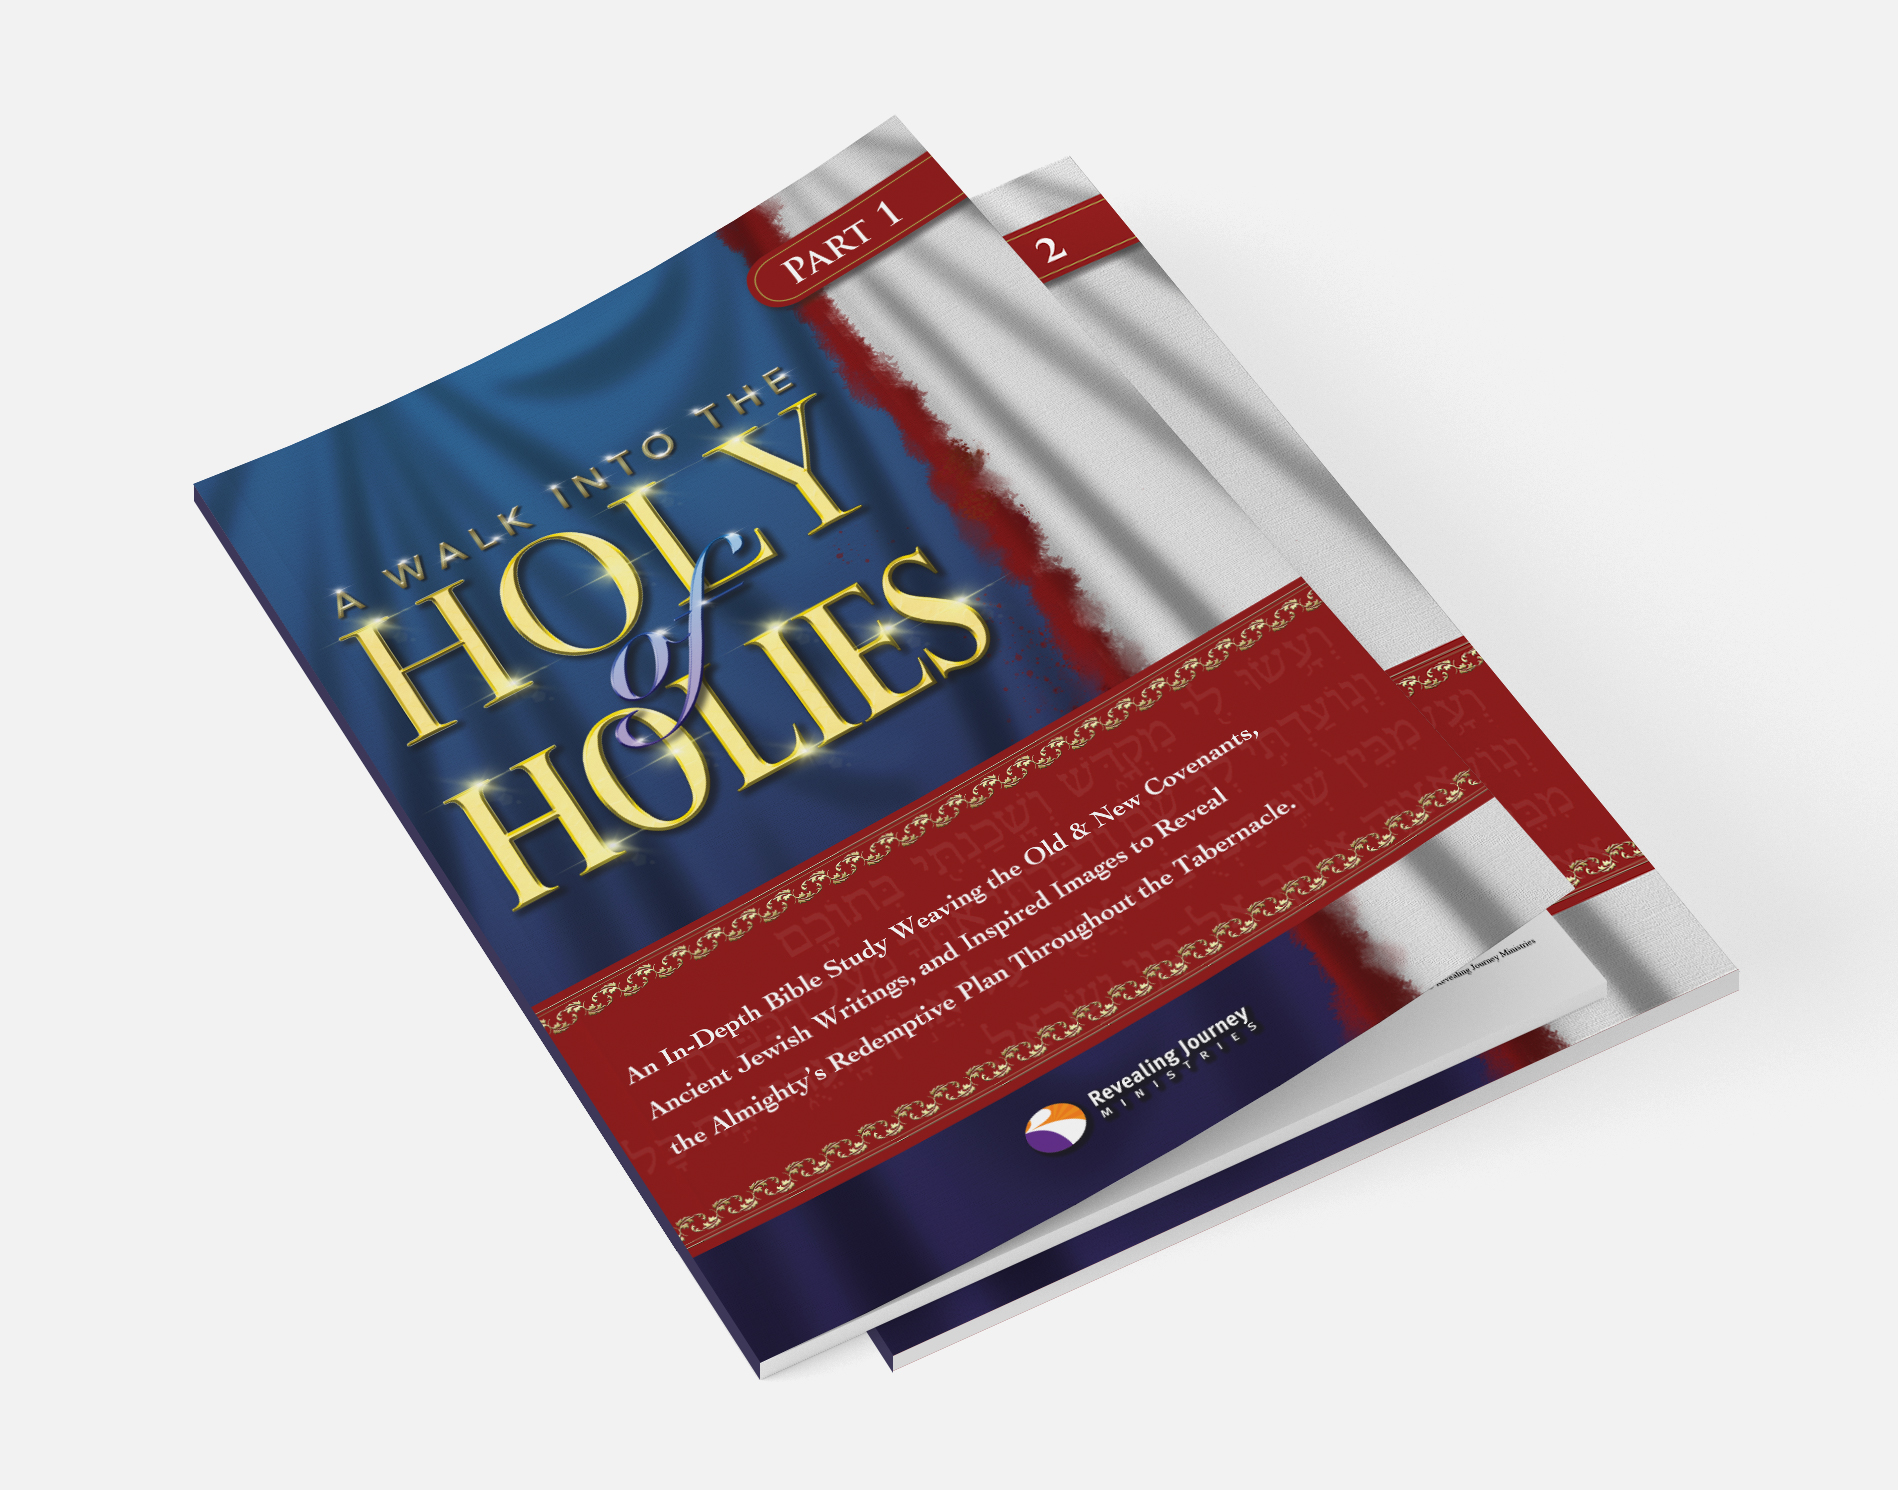 Holy of Holies Bible Study Guide Parts 1 & 2 for Sale